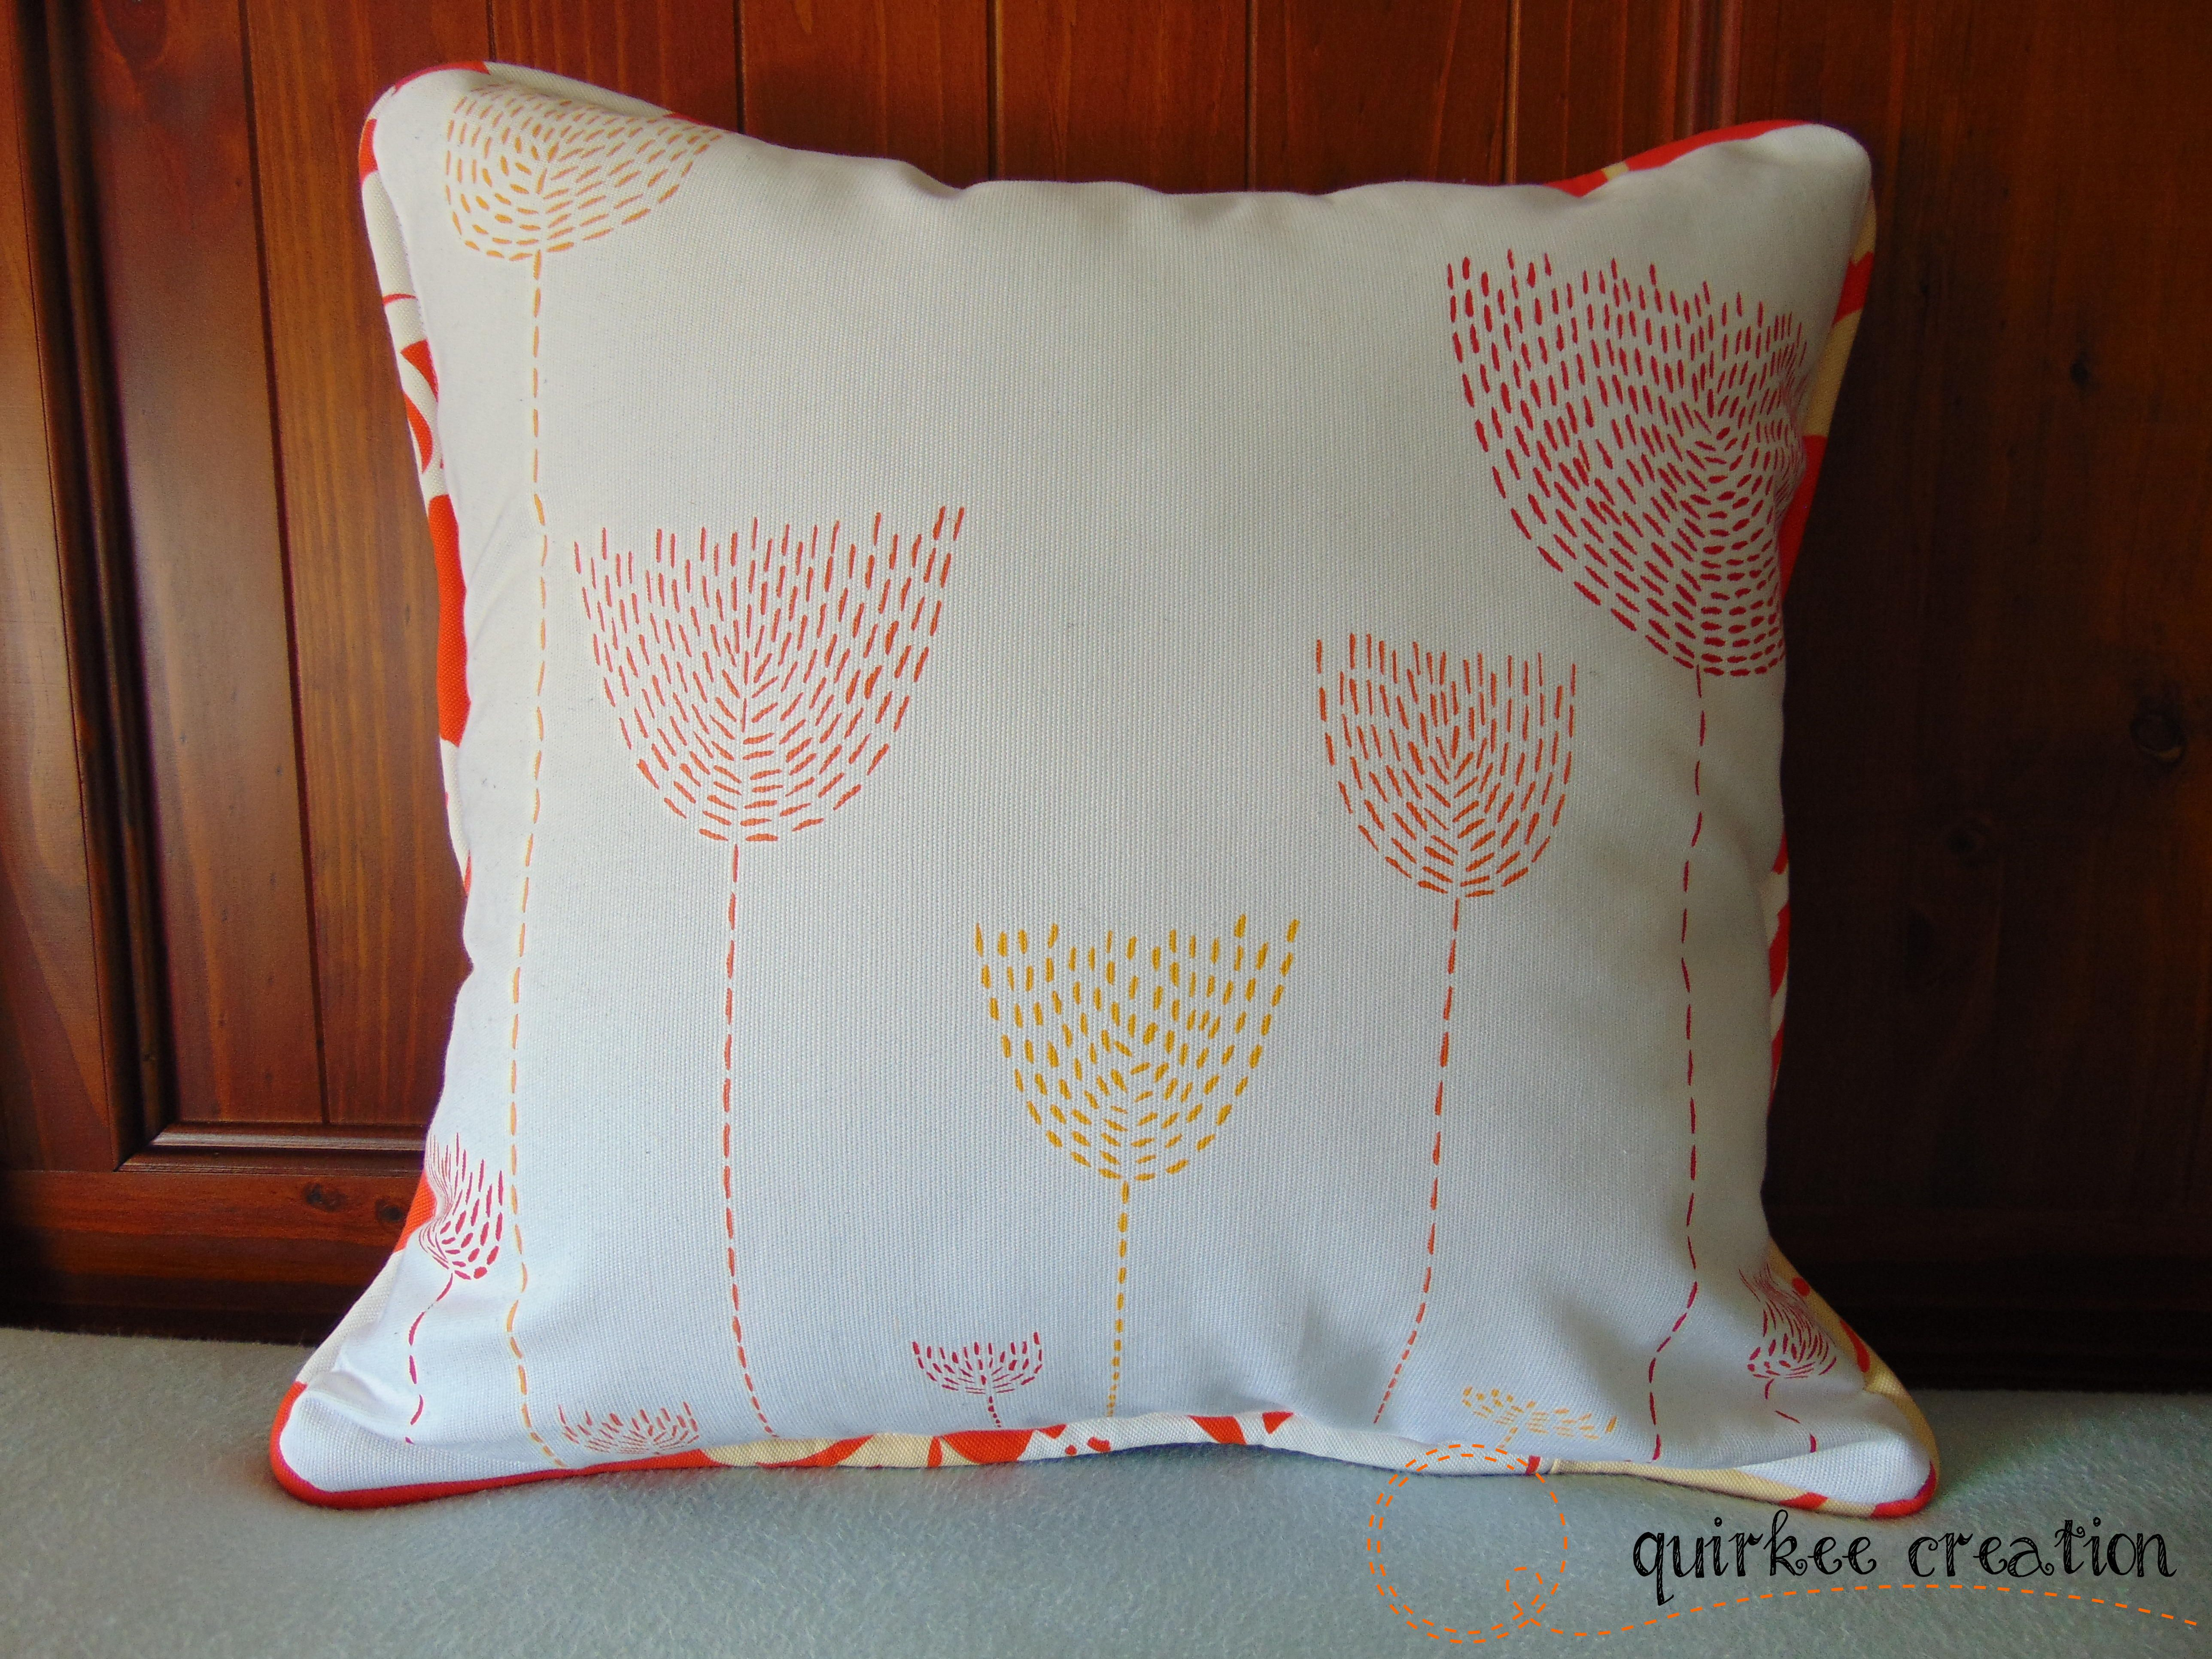 Painted cushion cover by quirkee creation custom cushion covers